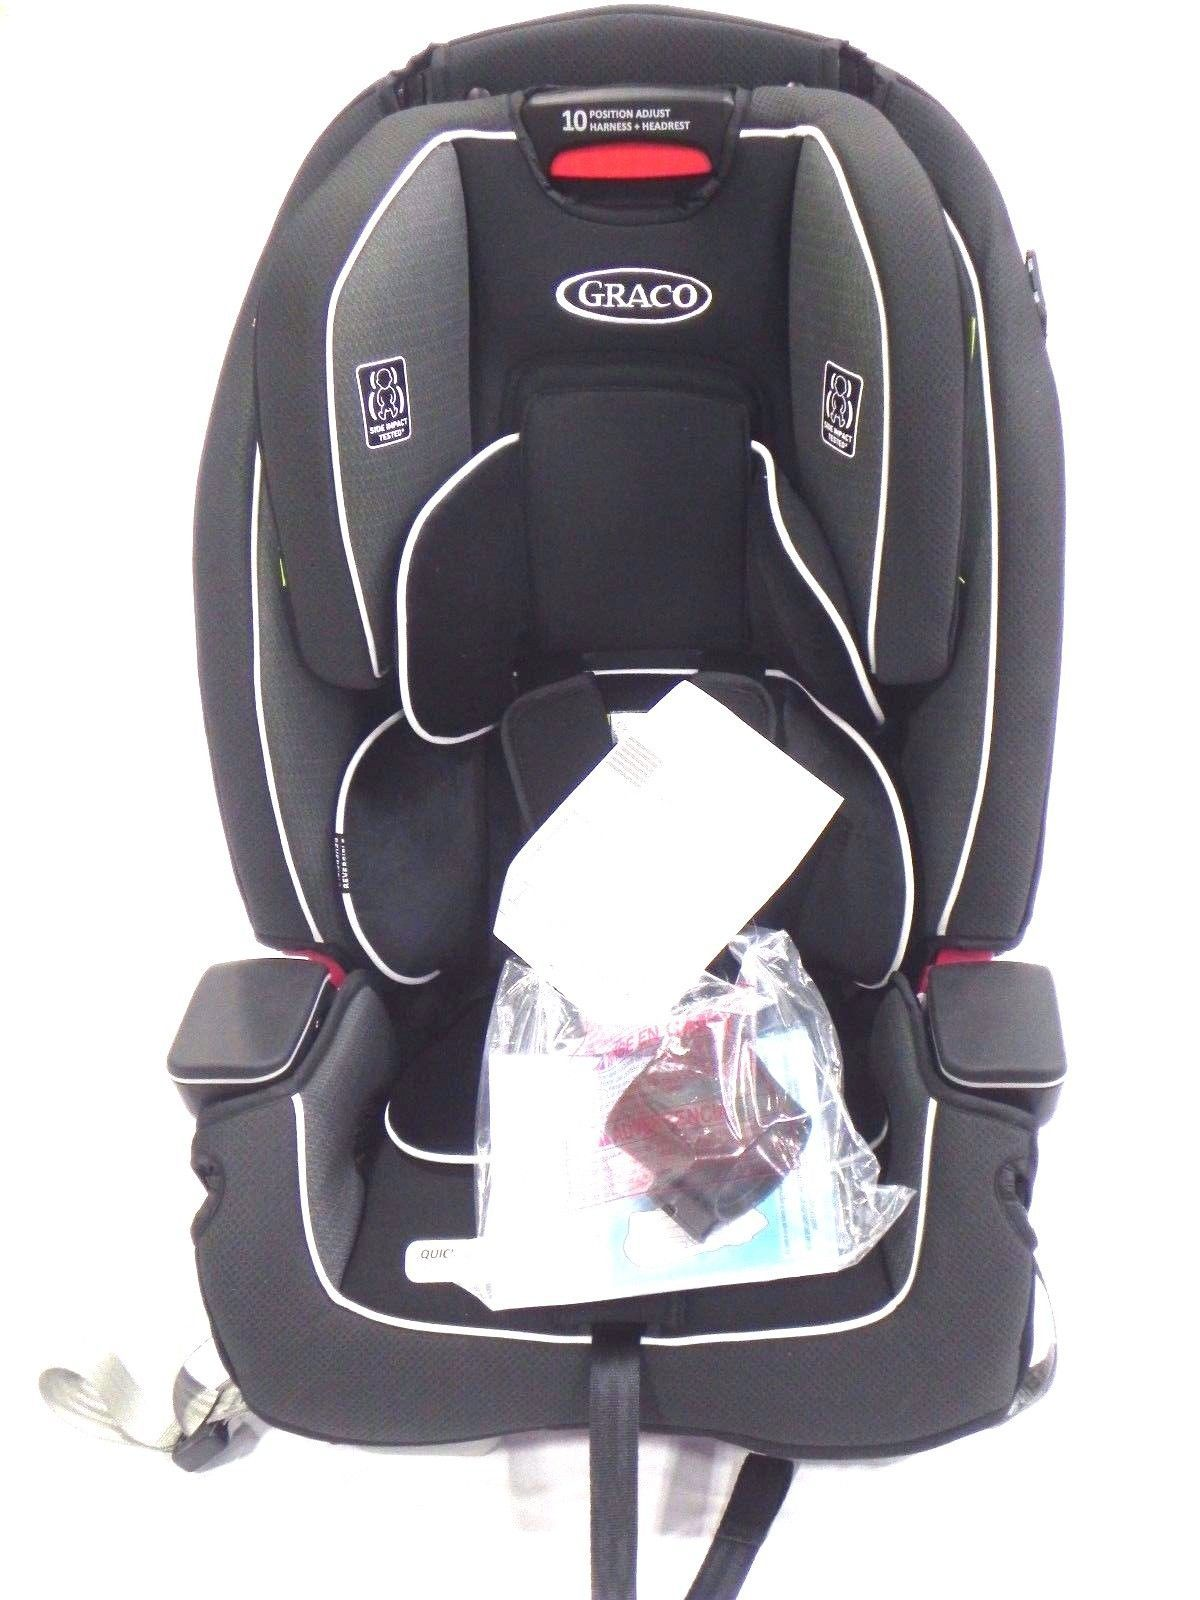 Graco Milestone All In One Convertible Car Seat Gotham